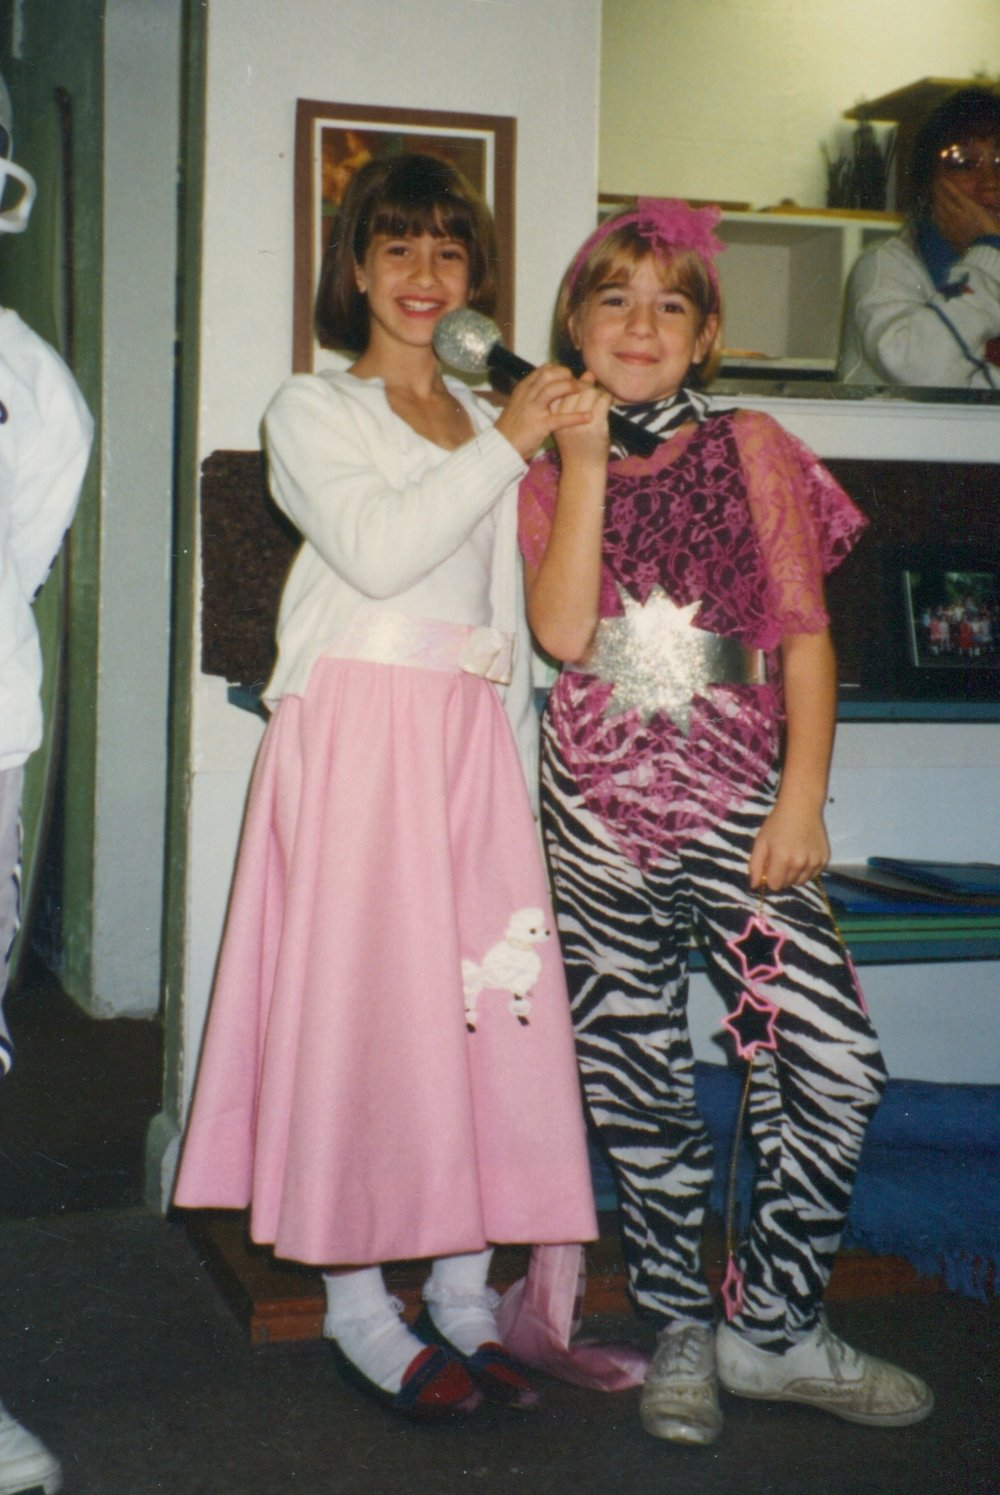 Ms. Megan as a Villa di Maria student, celebrating Halloween,standing in what is NOW her very own classroom. Can't. Beat. That.